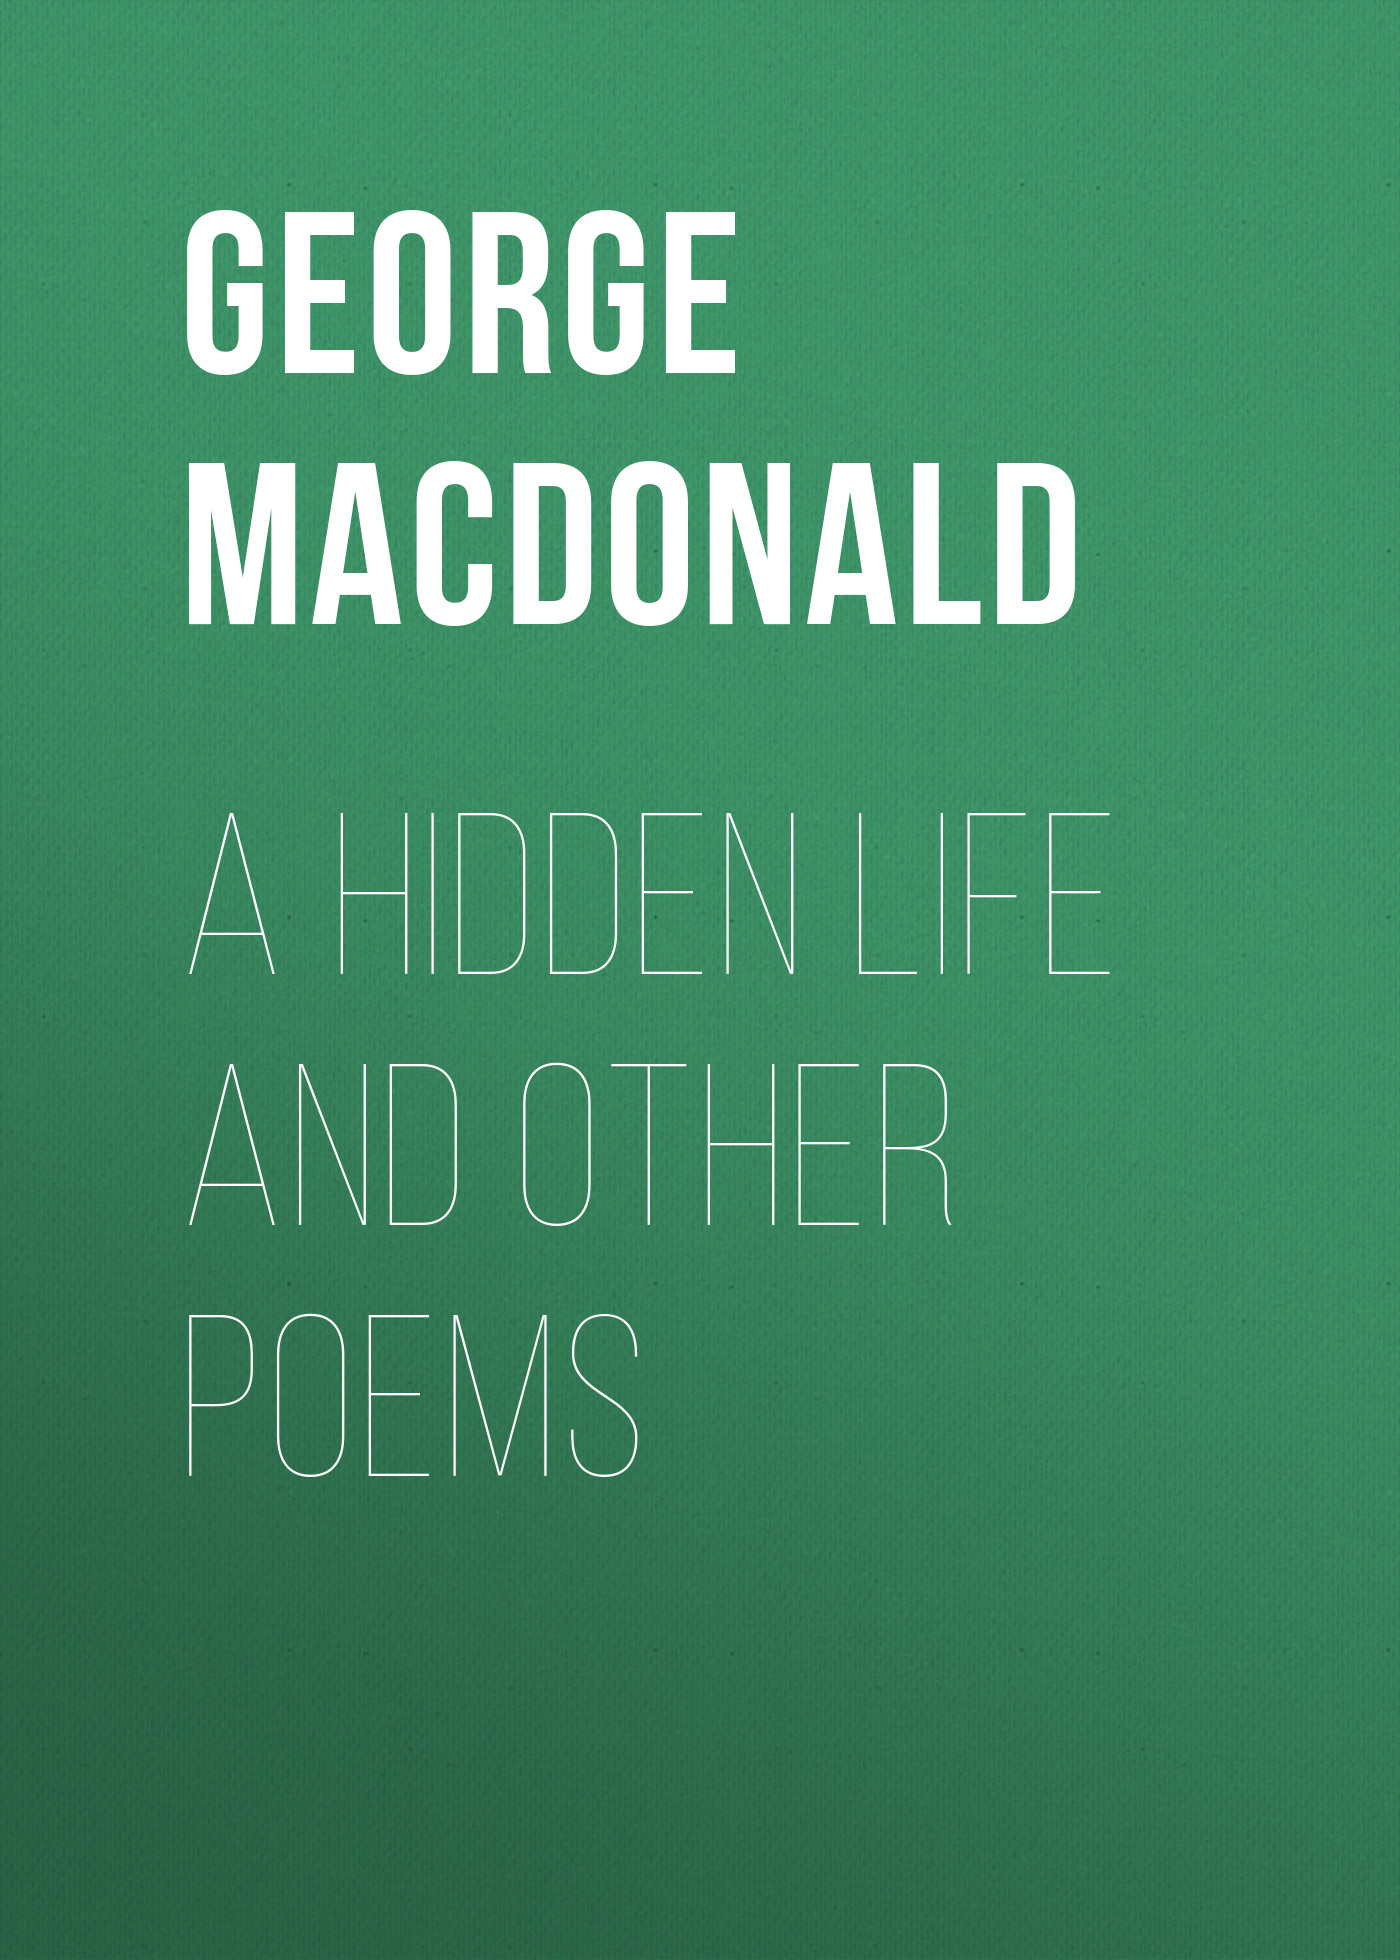 George MacDonald A Hidden Life and Other Poems